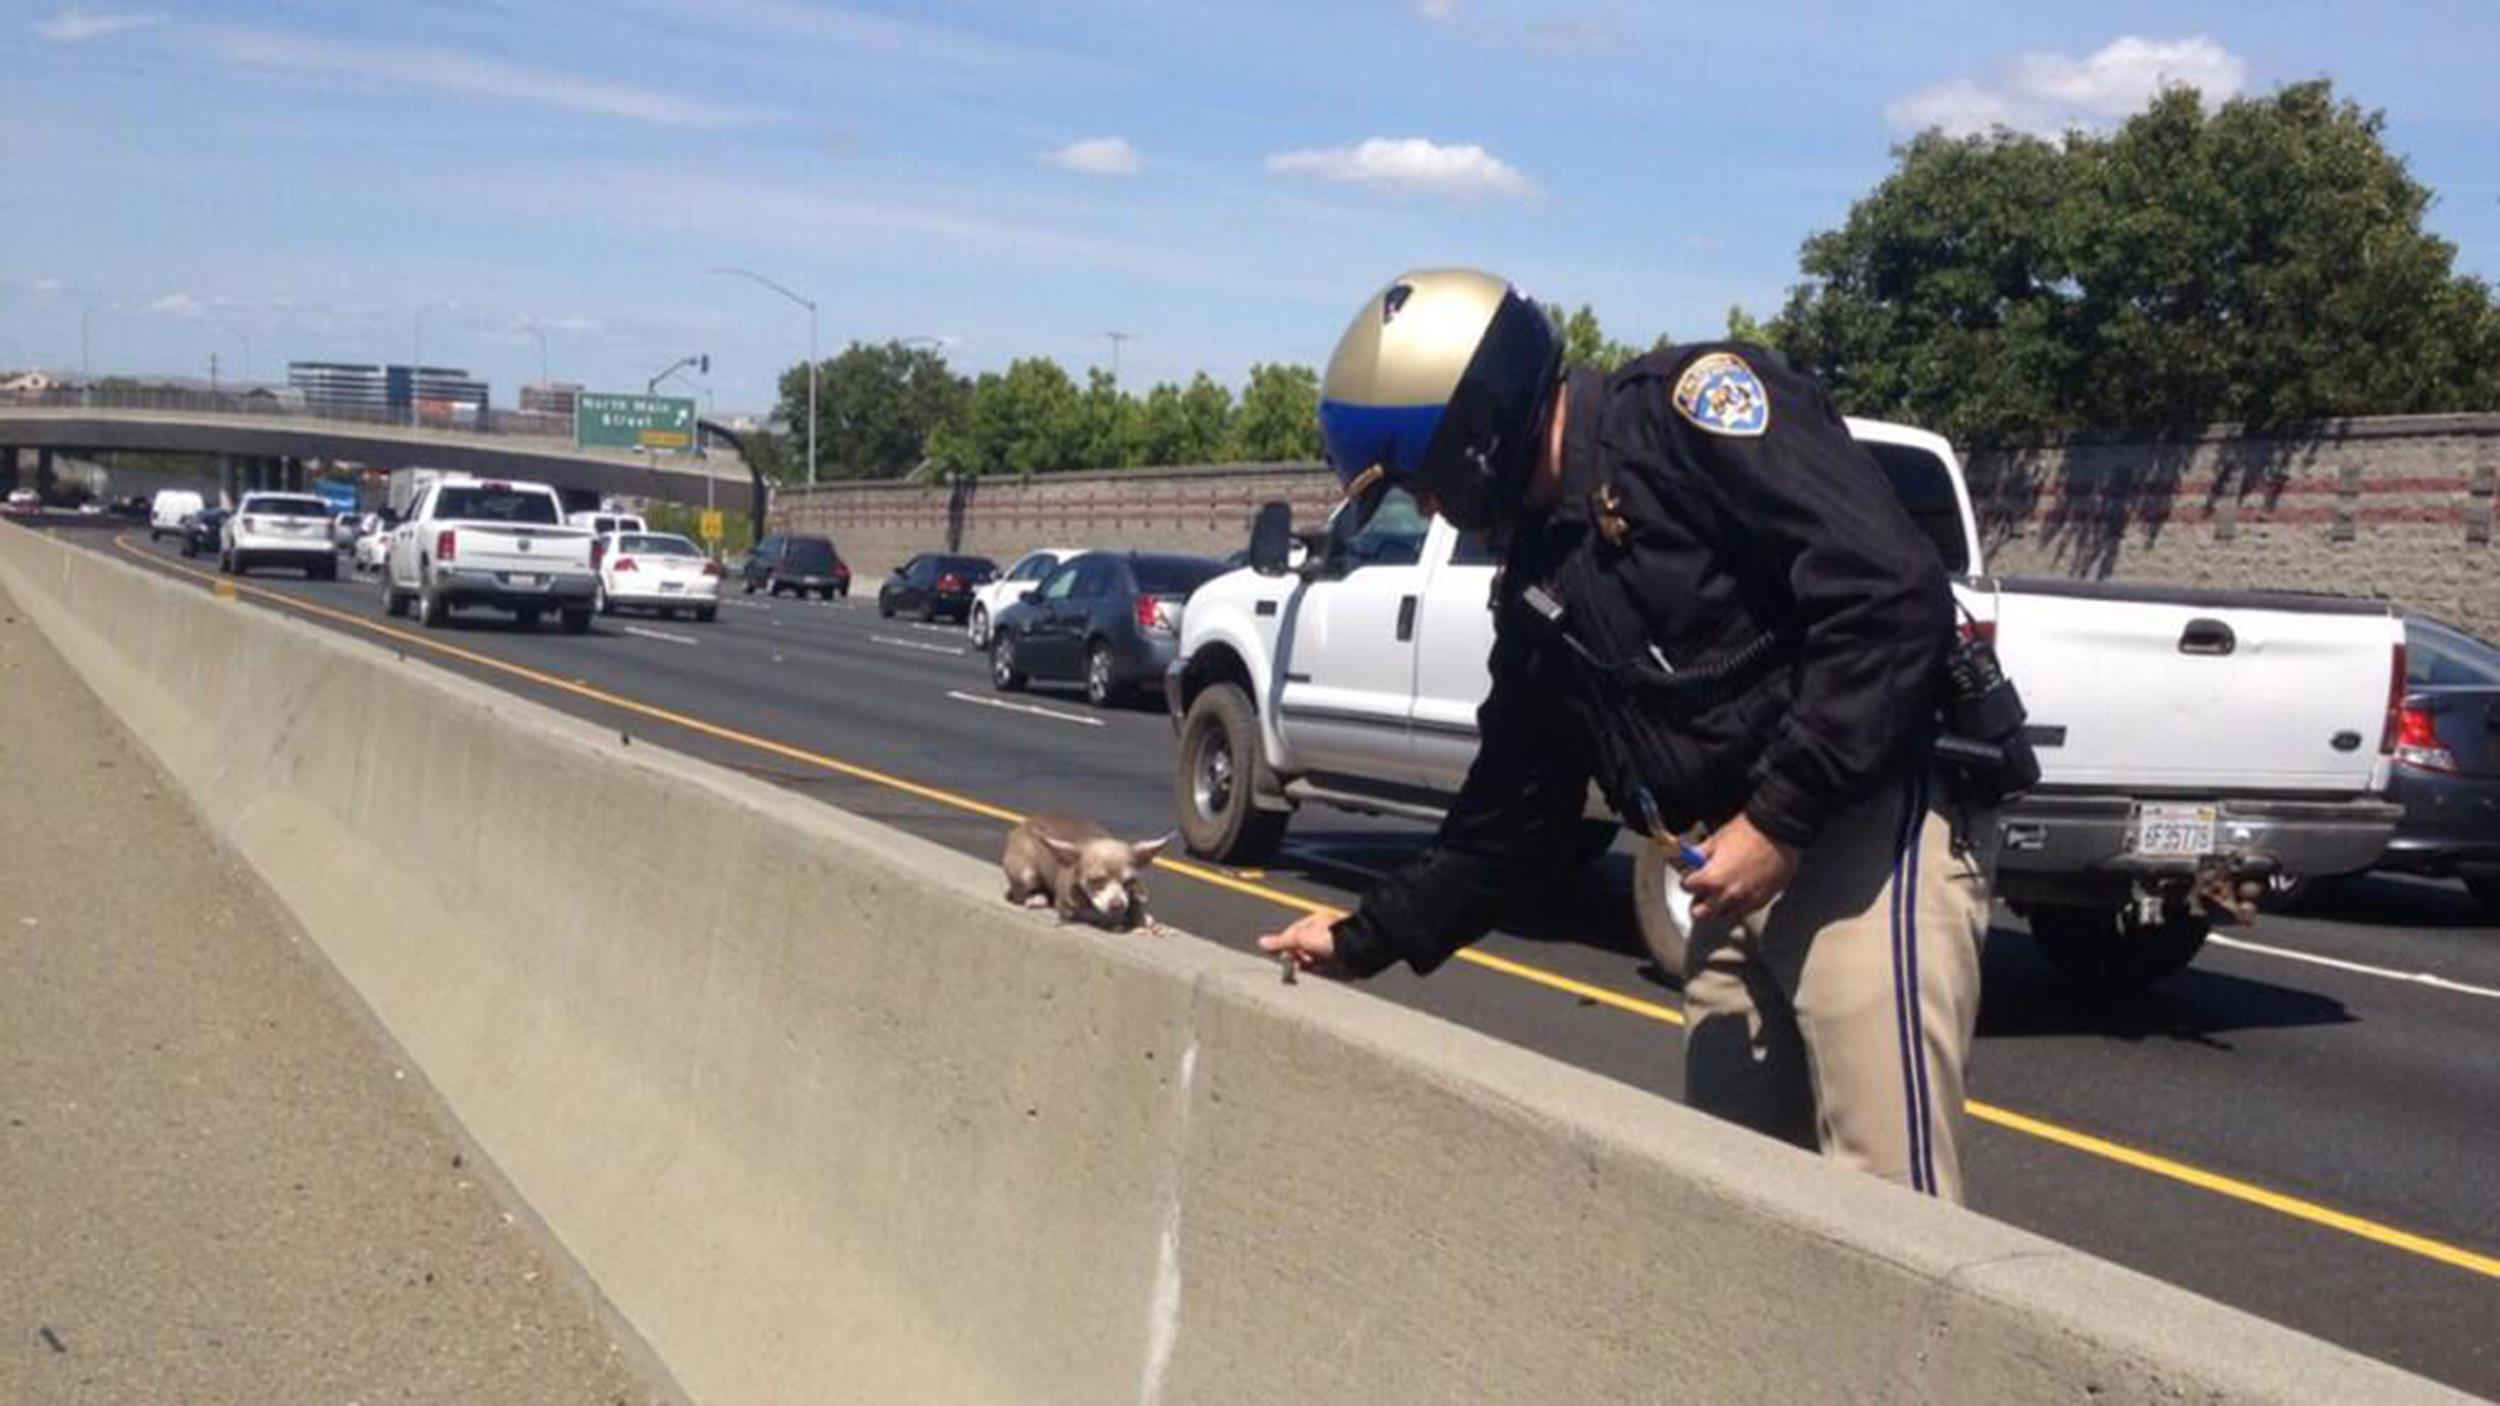 Image: A California Highway Patrol Officer tries to help a dog off a busy highway.